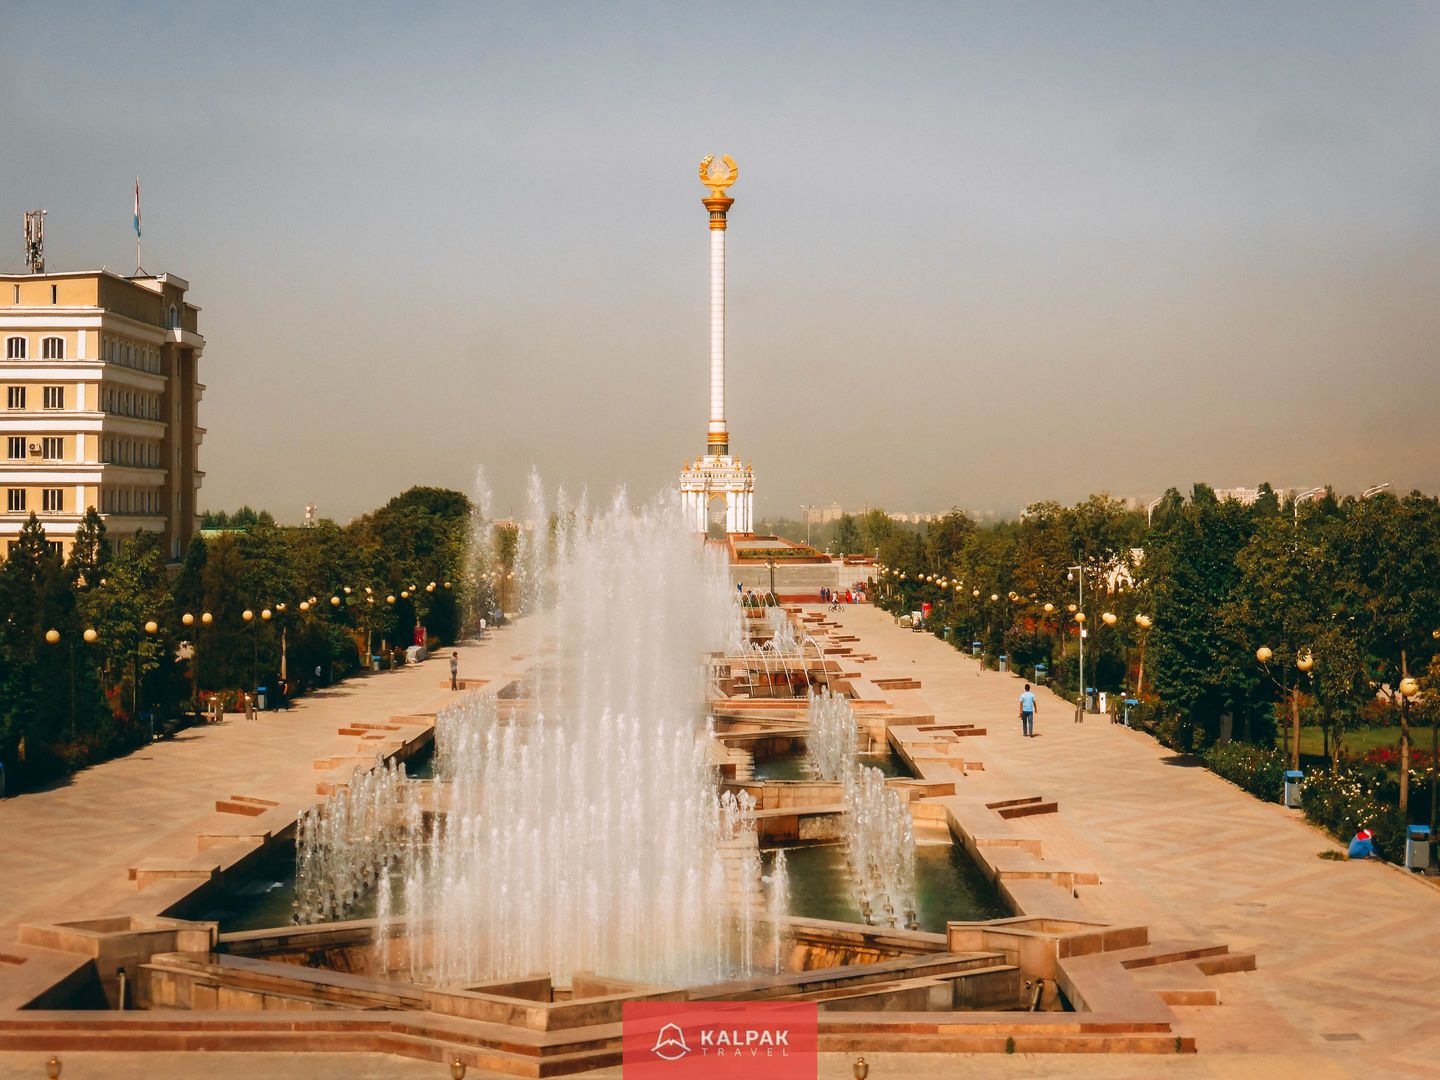 Central Asia Capital, Dushanbe